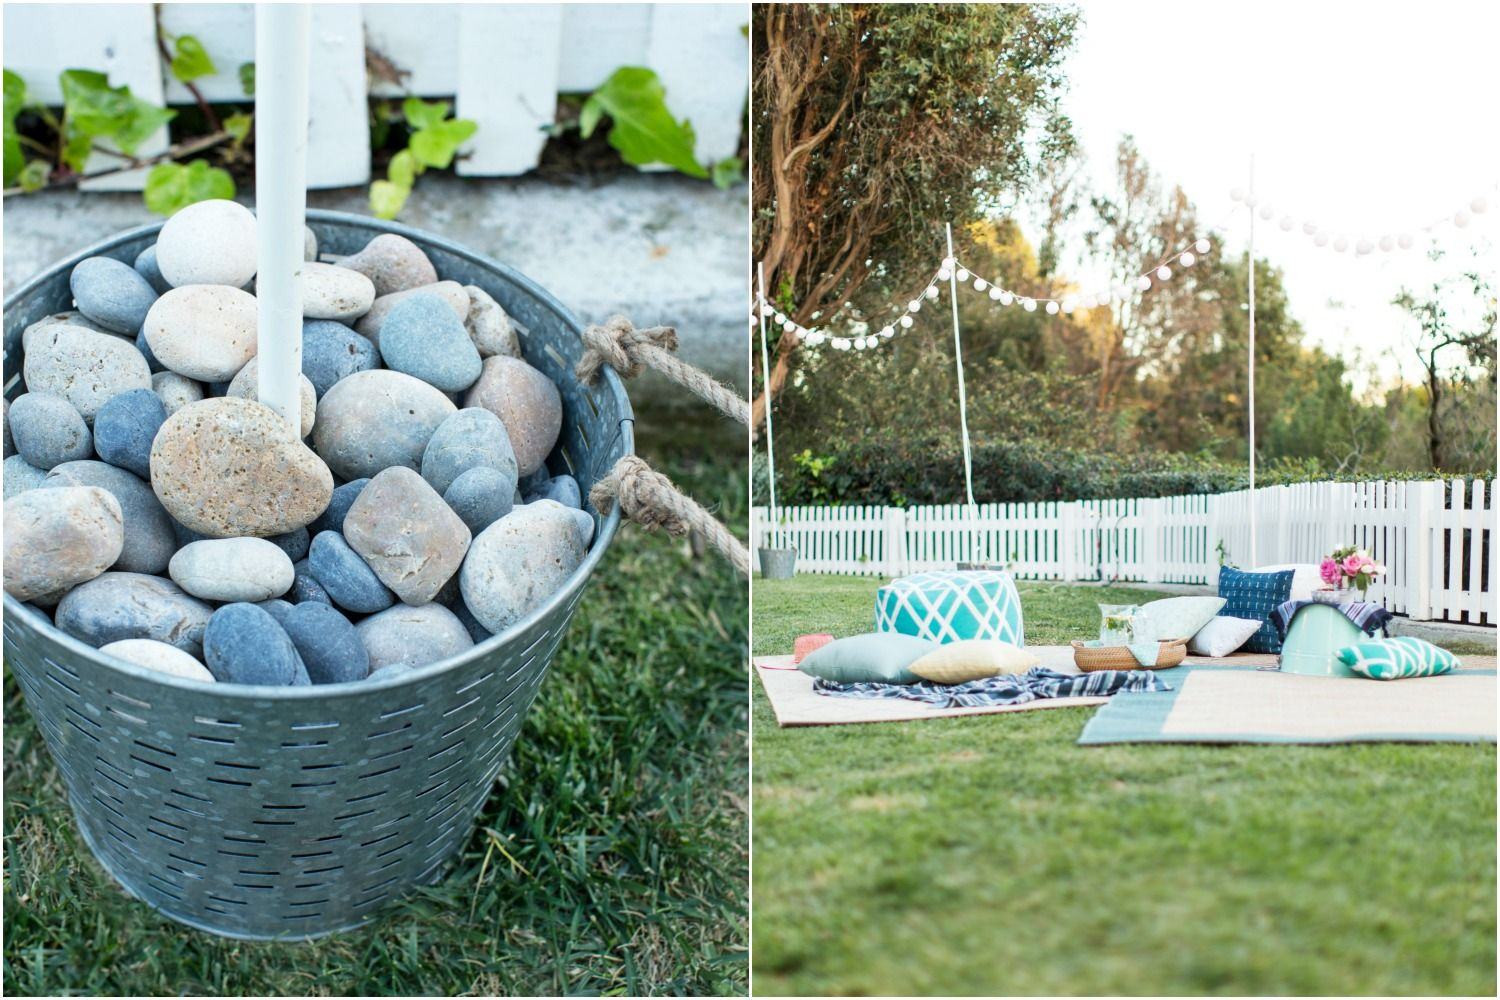 50 summer party ideas and themes outdoor entertaining tipsBackyard Party Ideas #19